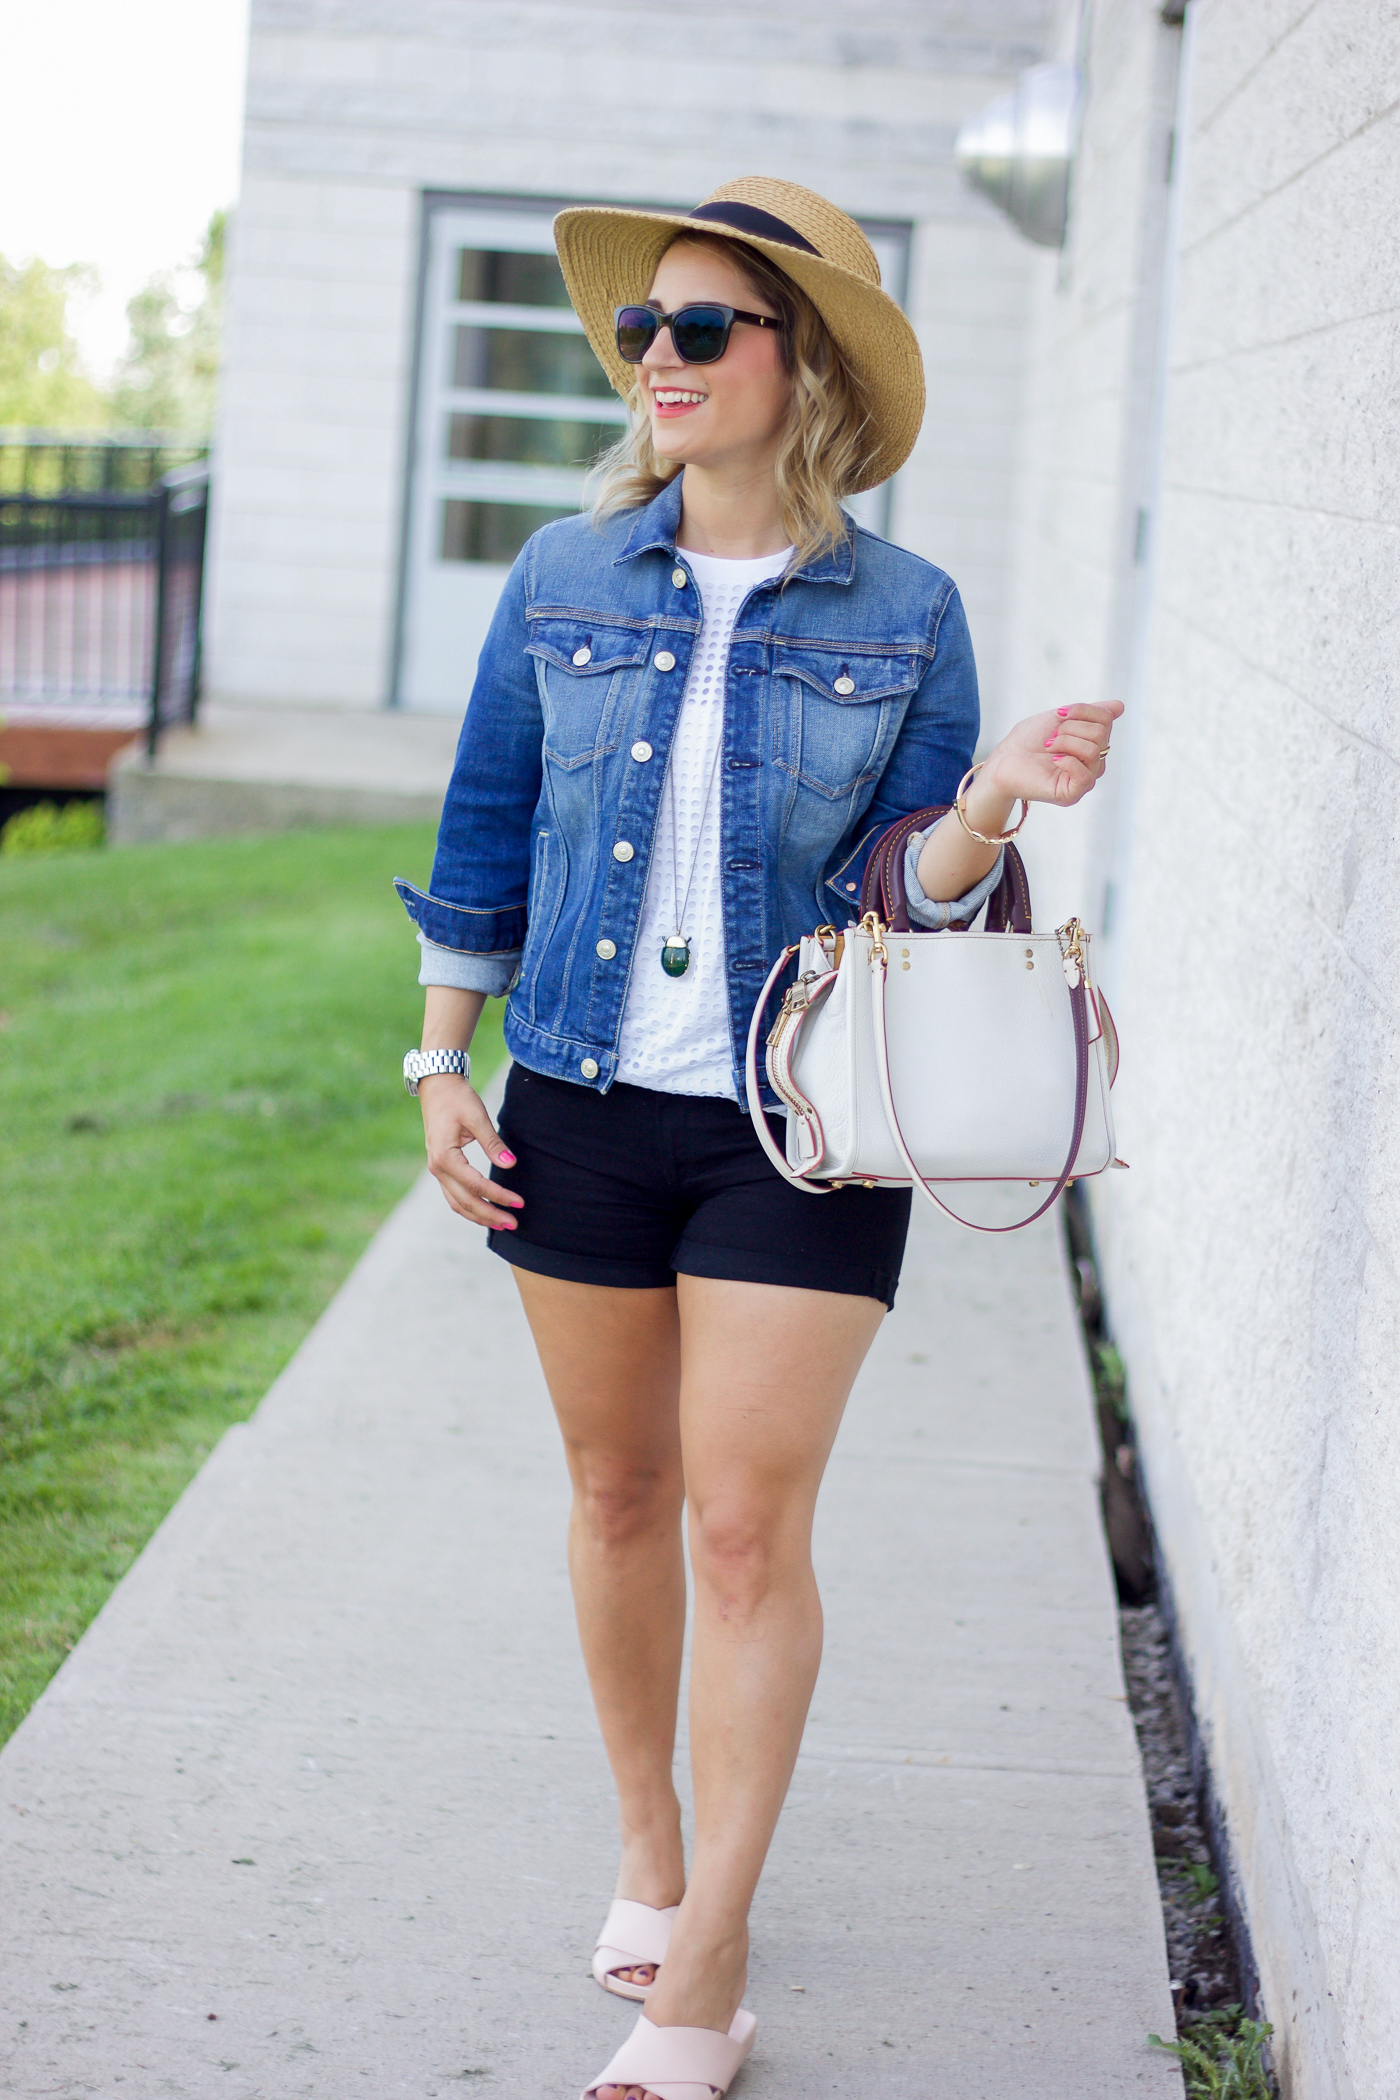 Jackie Goldhar is a Toronto-based lifestyle and fashion blogger, sharing a simple and chic petite-friendly summer outfit idea